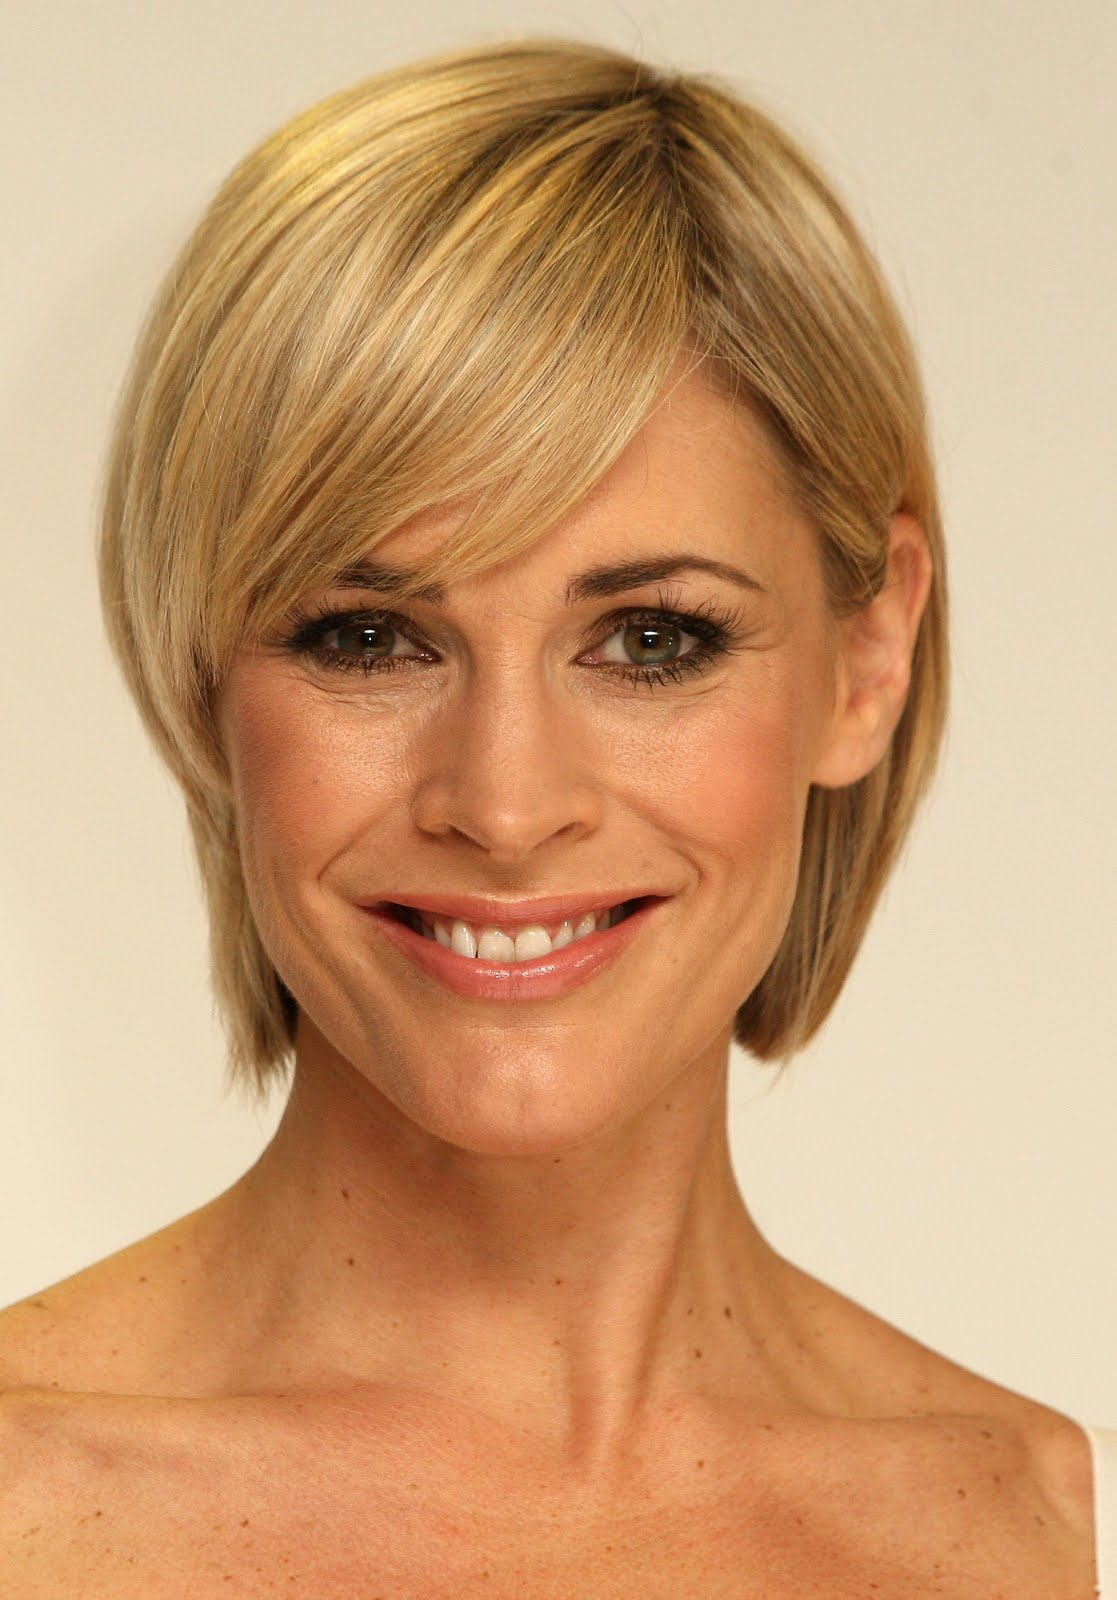 Best ideas for short hairstyles of women | epsos.de